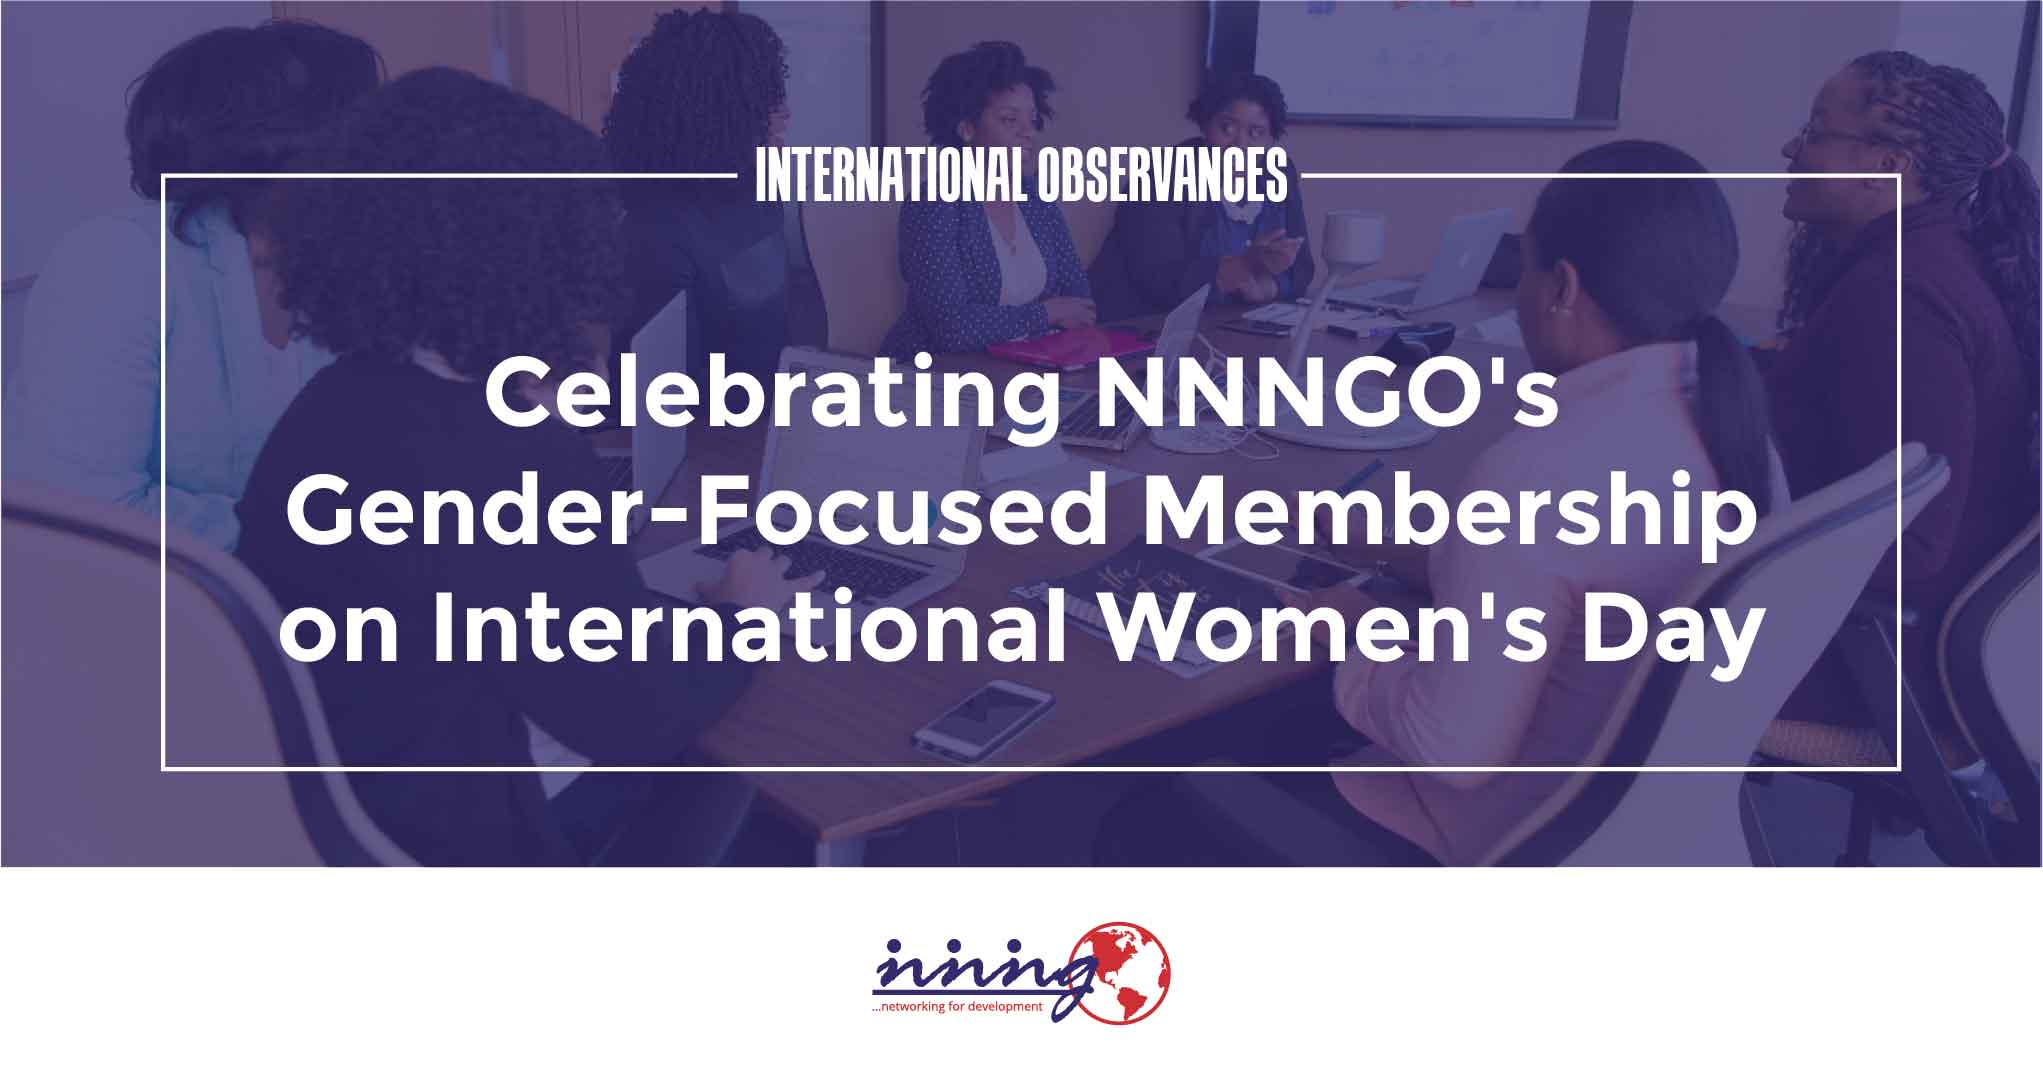 Celebrating NNNGO's Gender-Focused Membership